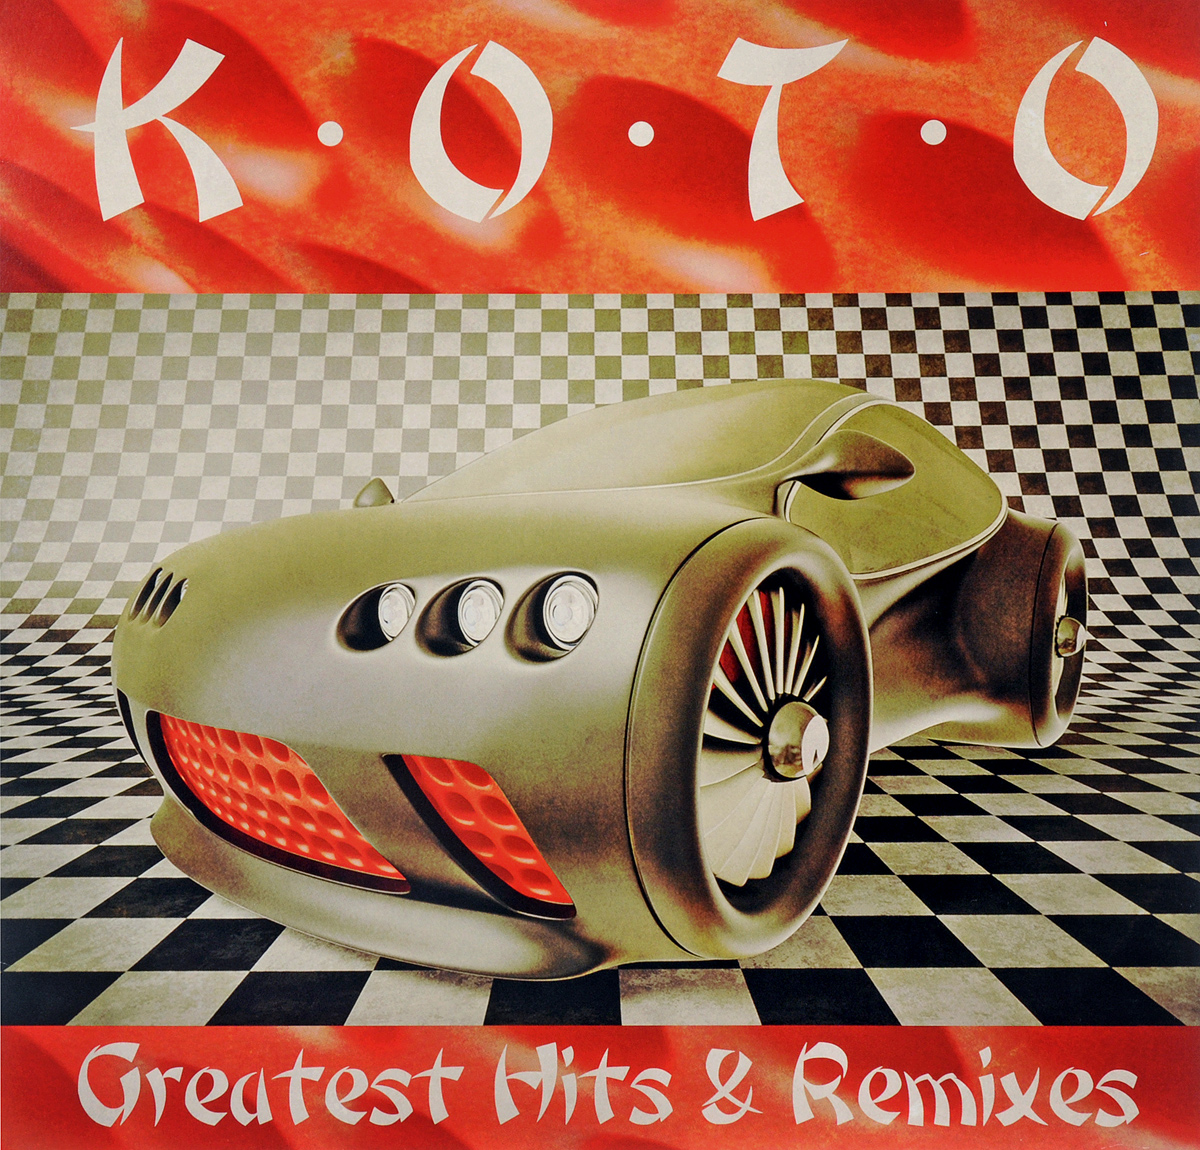 Koto Koto. Greatest Hits & Remixes (LP) koto koto the 12 mixes